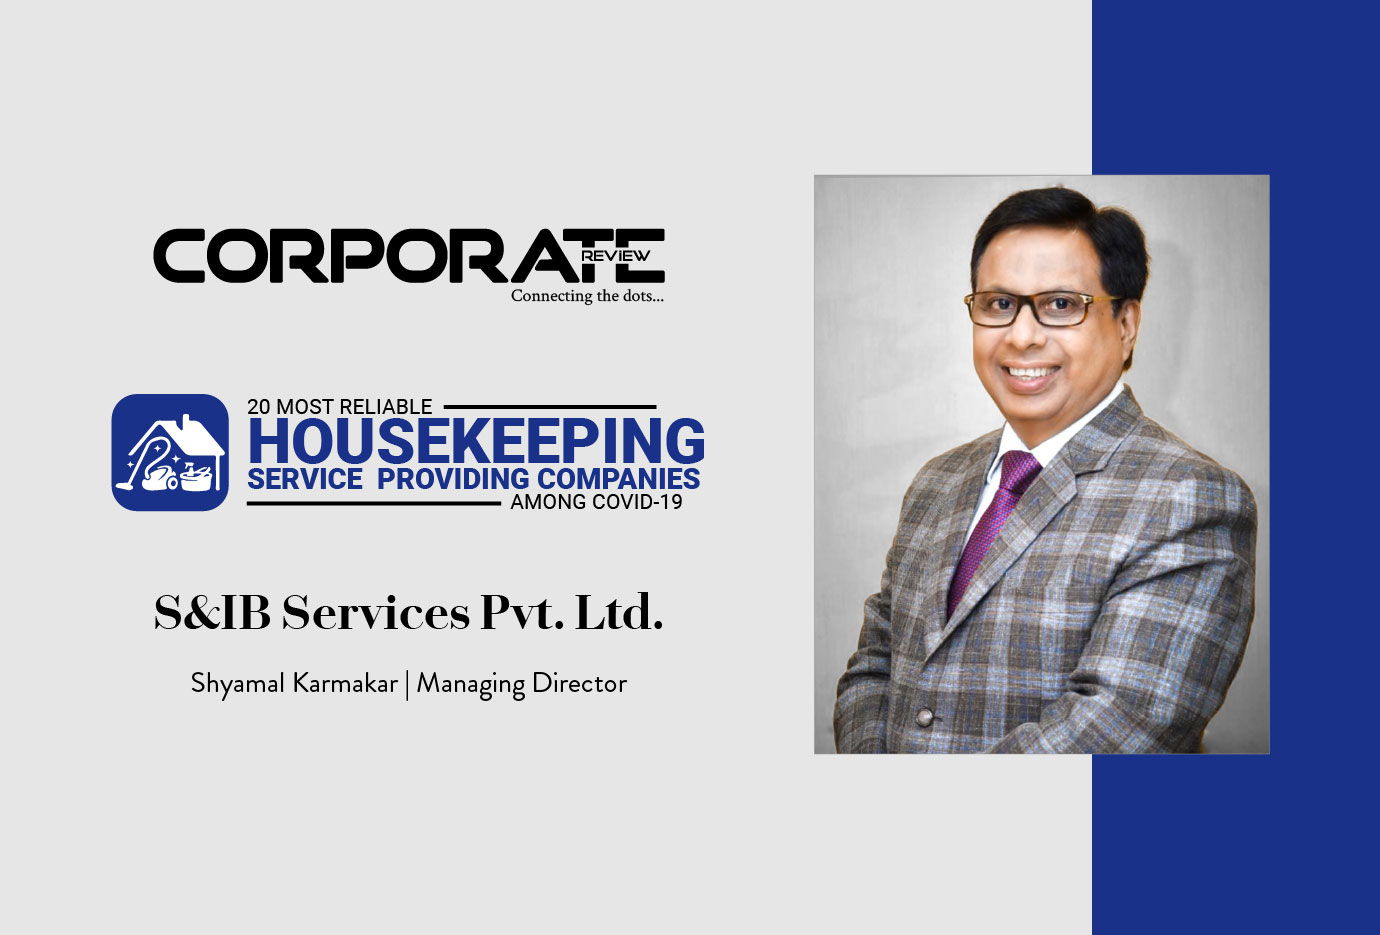 S&IB Services Pvt. Ltd.: the frontline champion of India's housekeeping industry since 1985